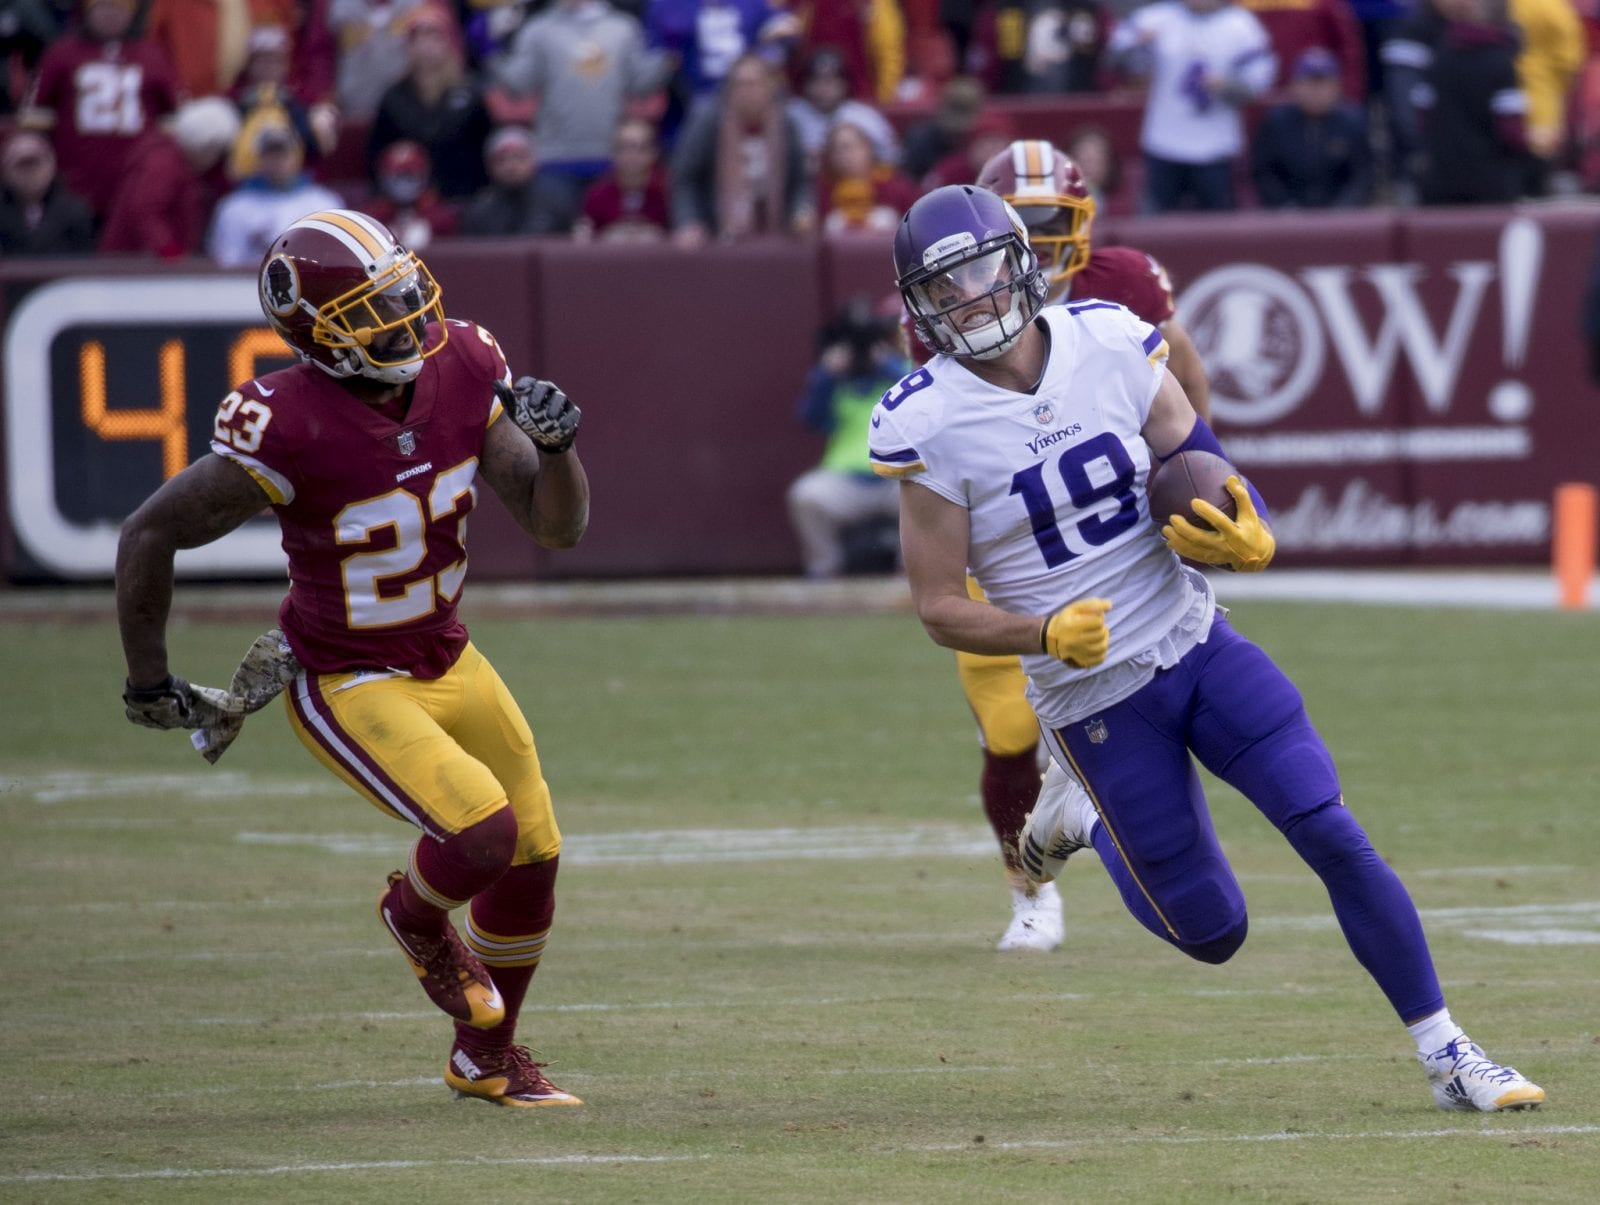 Vikings wide receiver Adam Thielen s remarkable journey from undrafted to  NFL stud d70456009